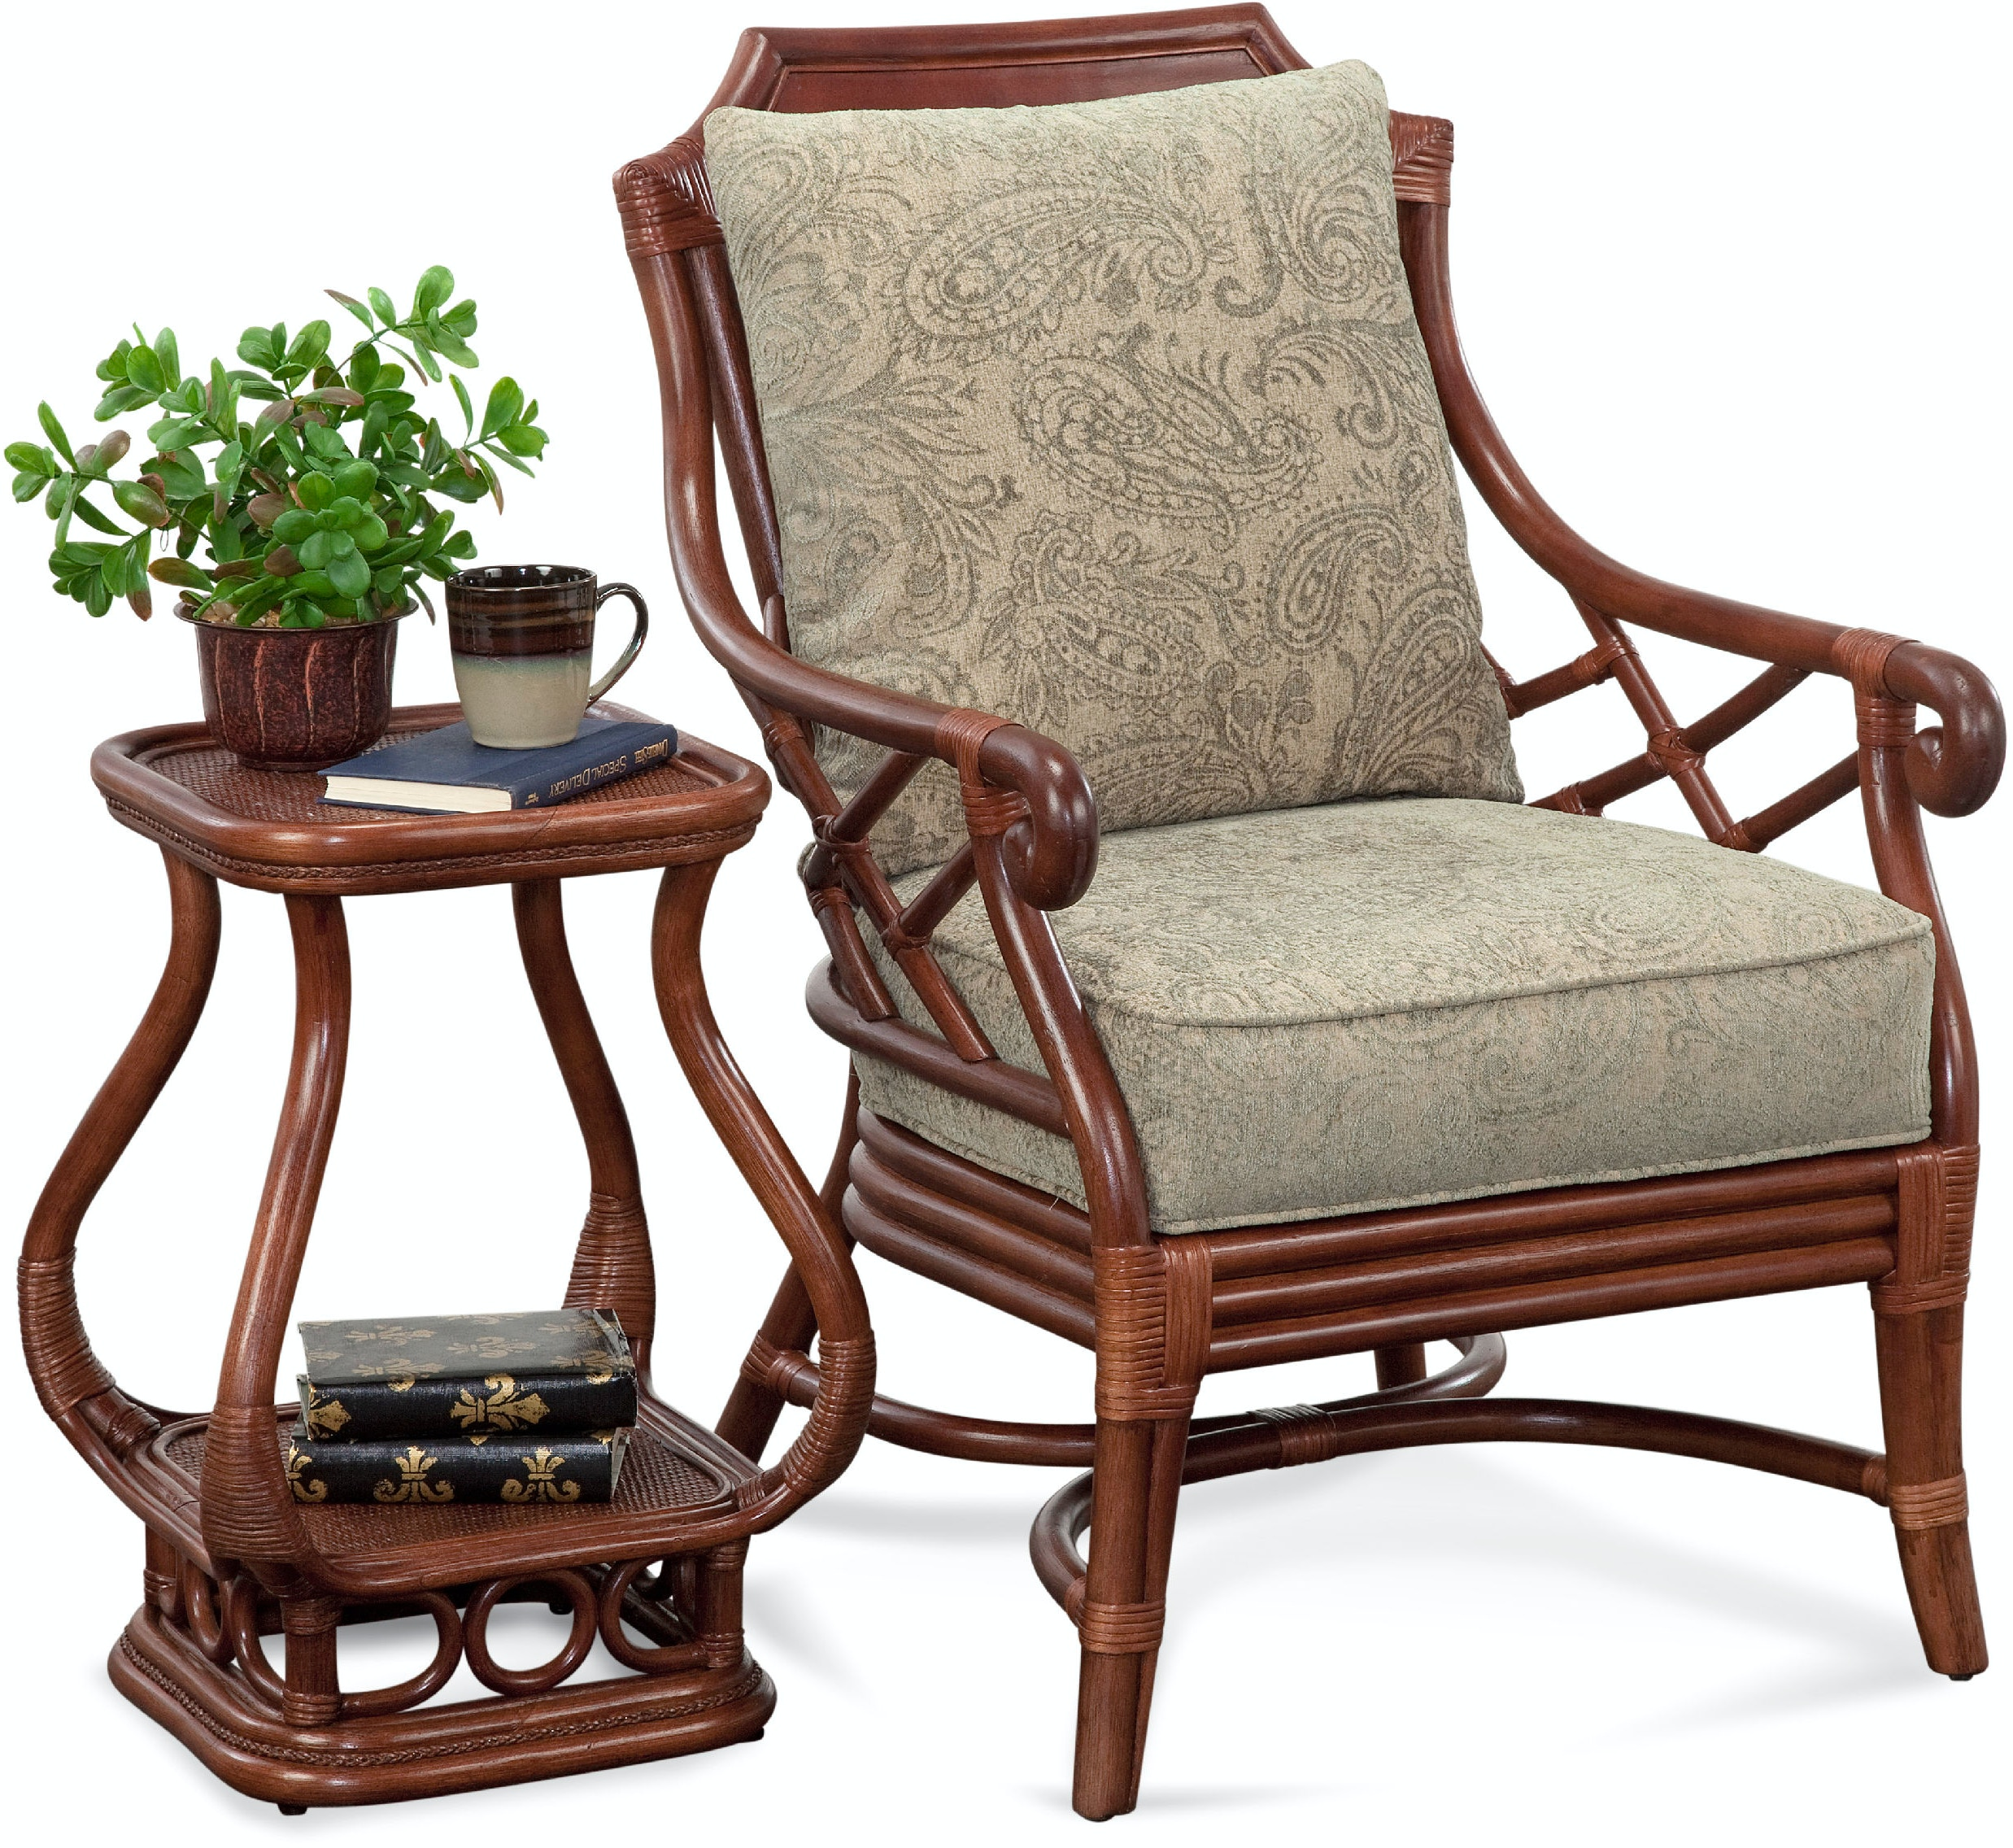 Cameron Accent Chair 1030-001